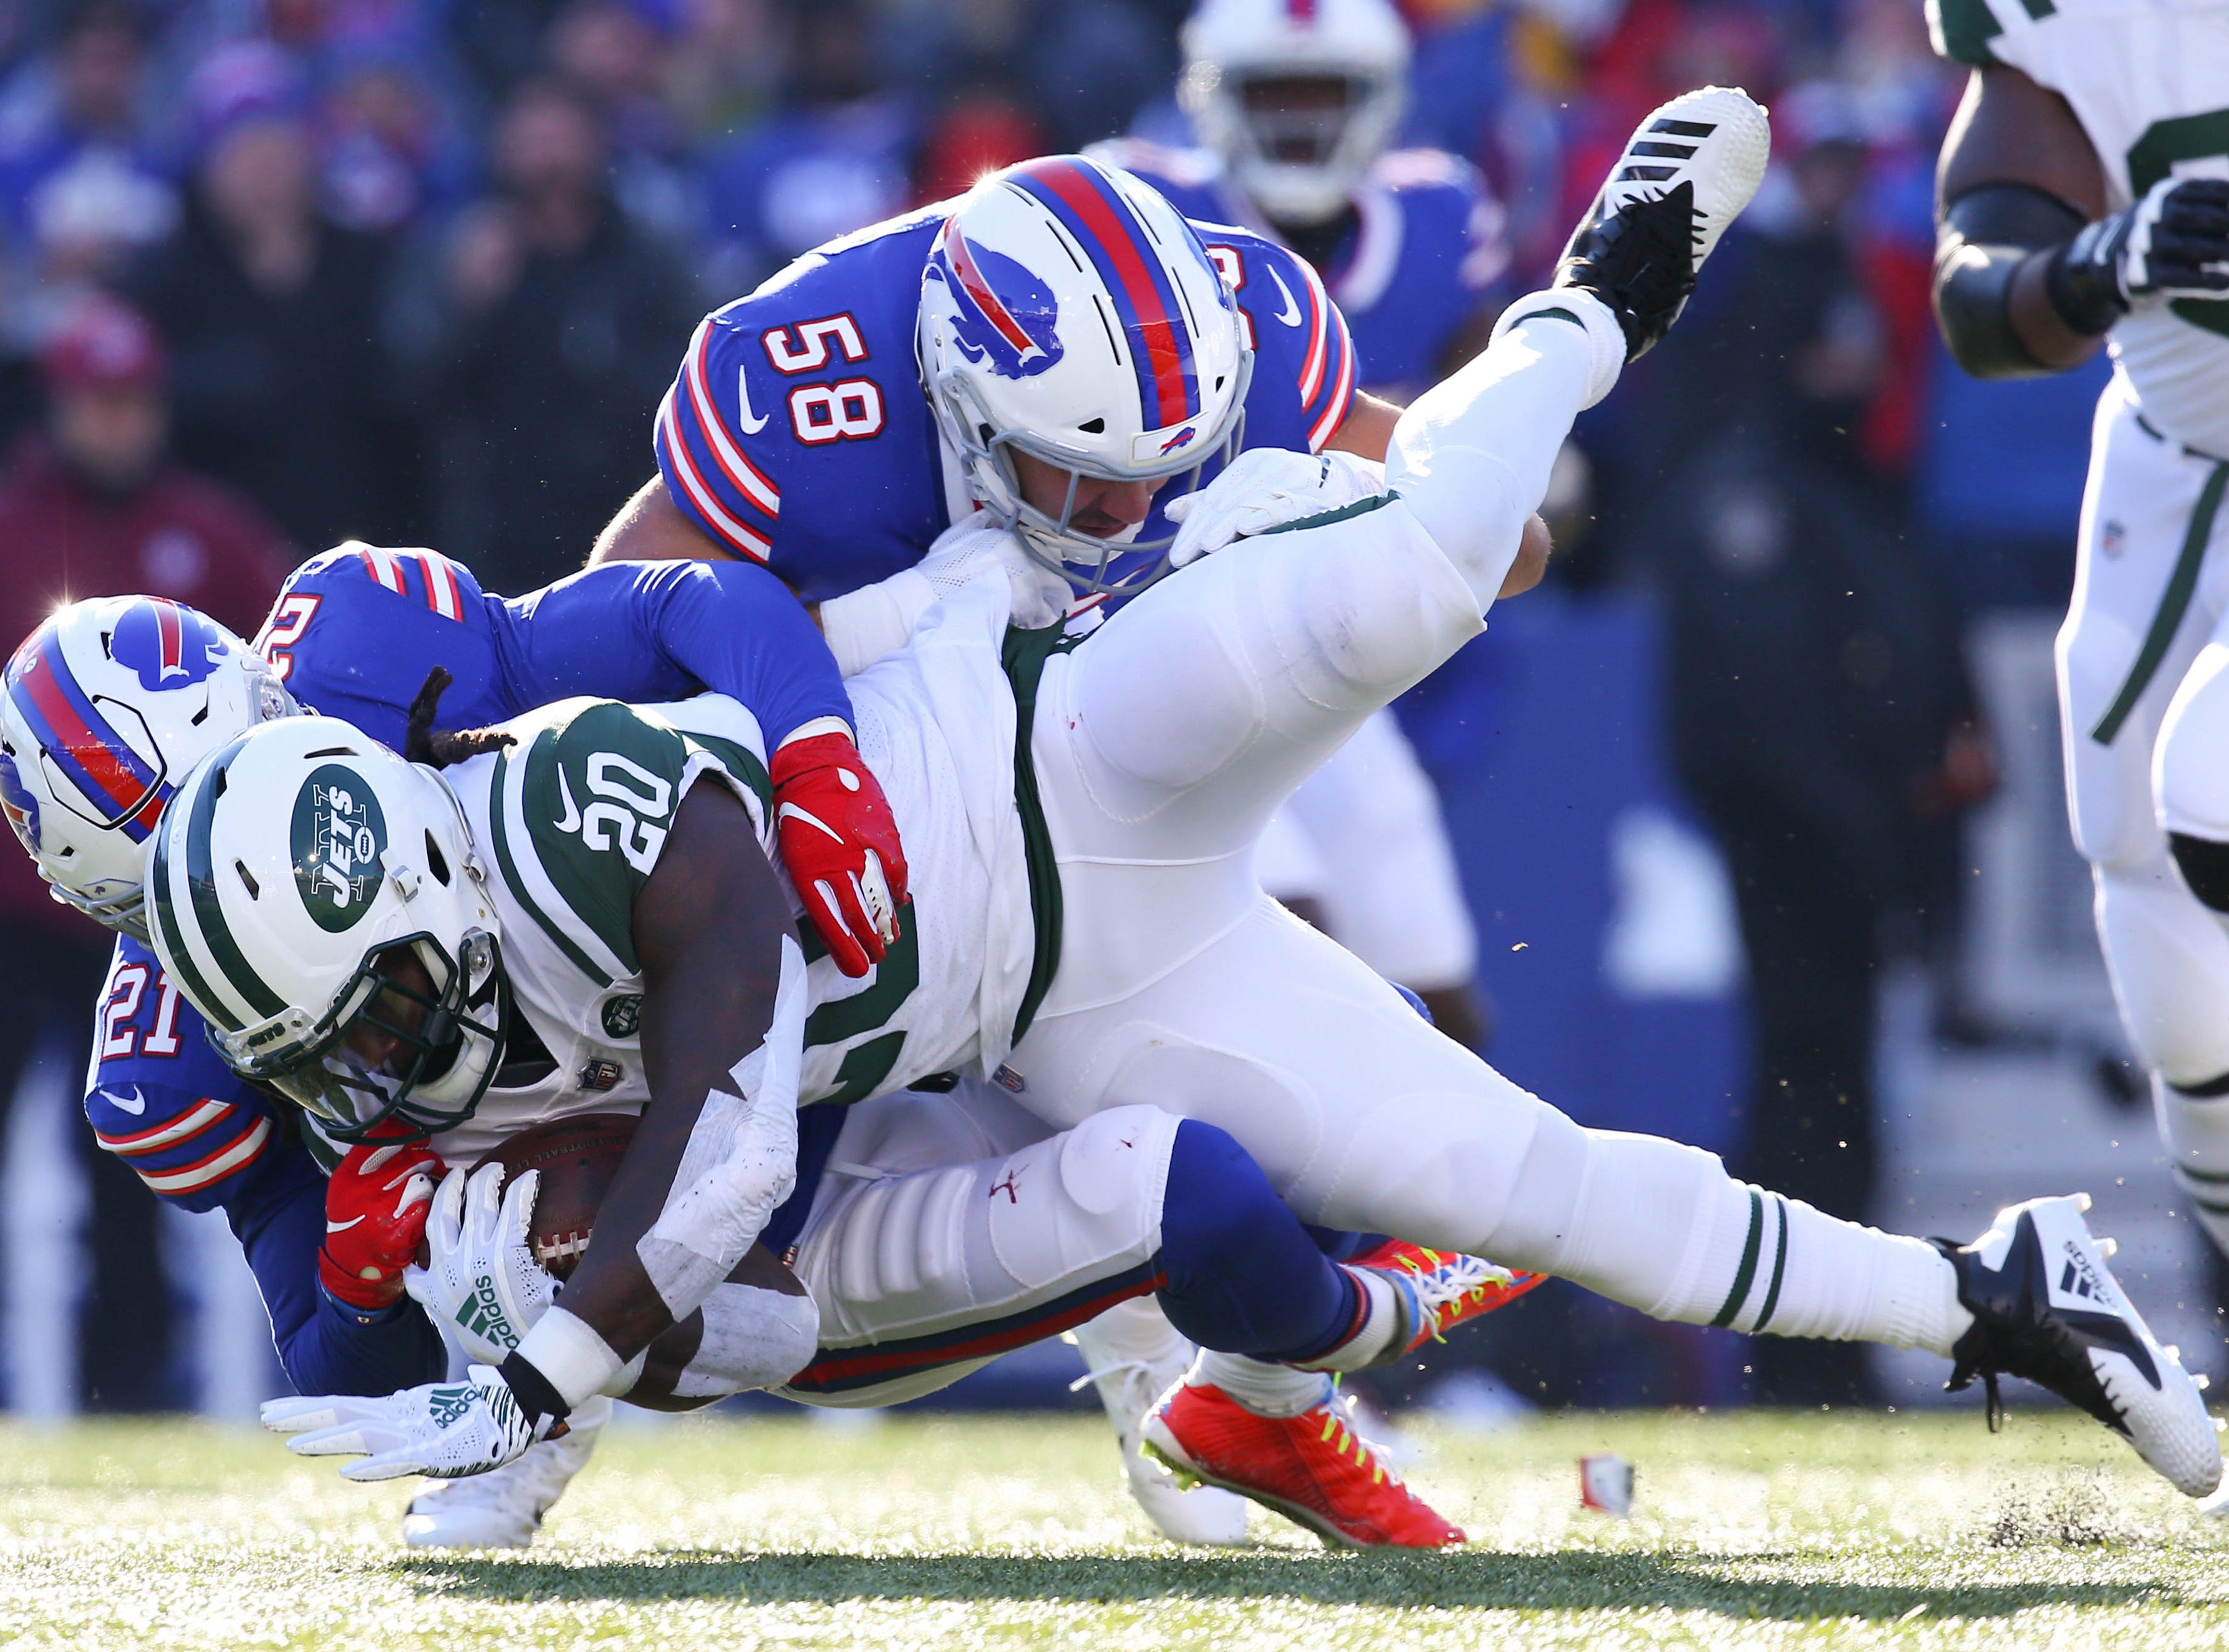 Bills free safety Jordan Poyer and outside linebacker Matt Milano combine to tackle New York Jets running back Isaiah Crowell.